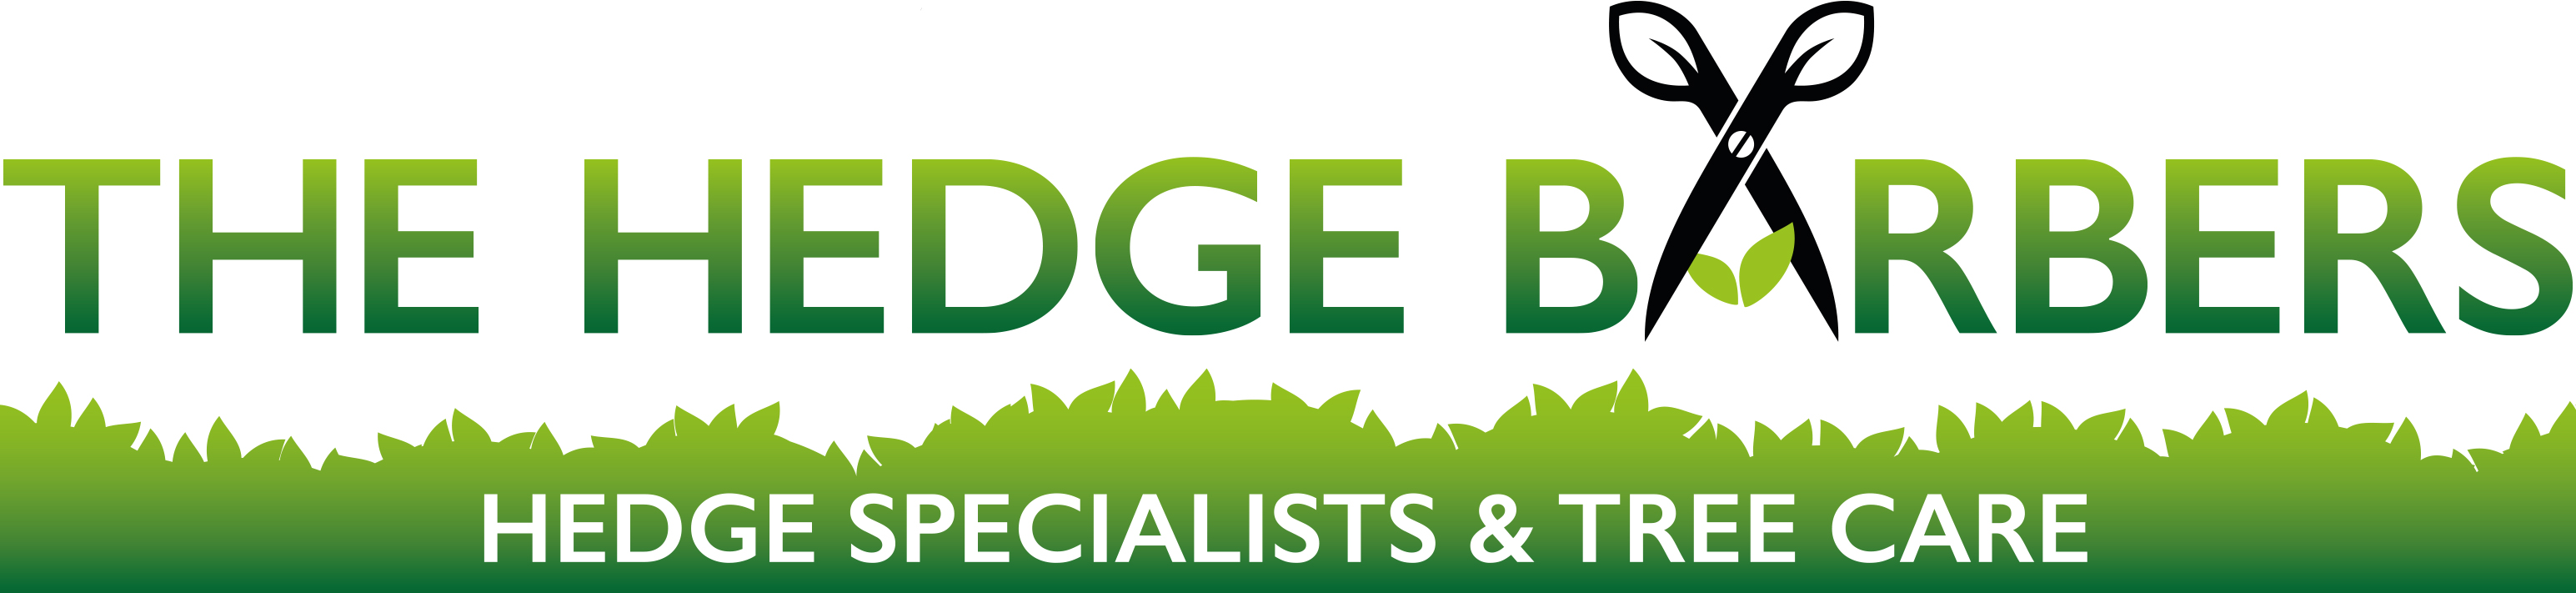 The Hedge Barbers Logo FINAL RGBjpg